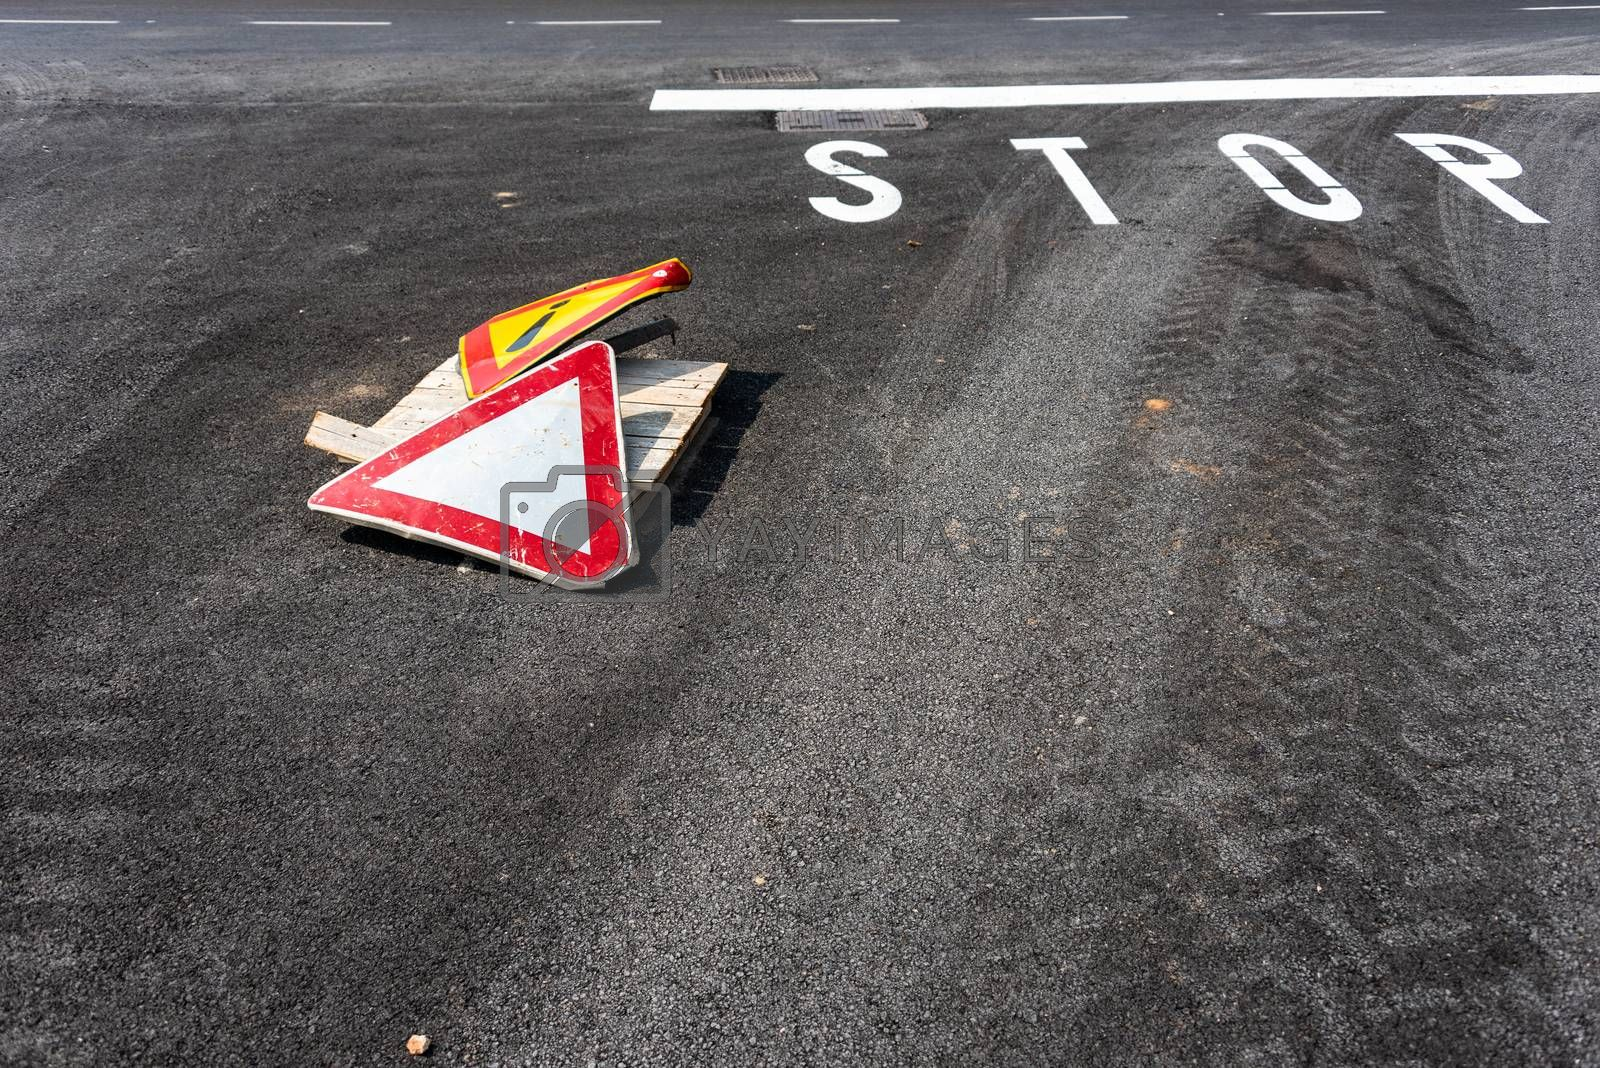 Warning sign exclamation mark in yellow triangle  and pay attention to the right of way sign on asphalt road with white stop sign